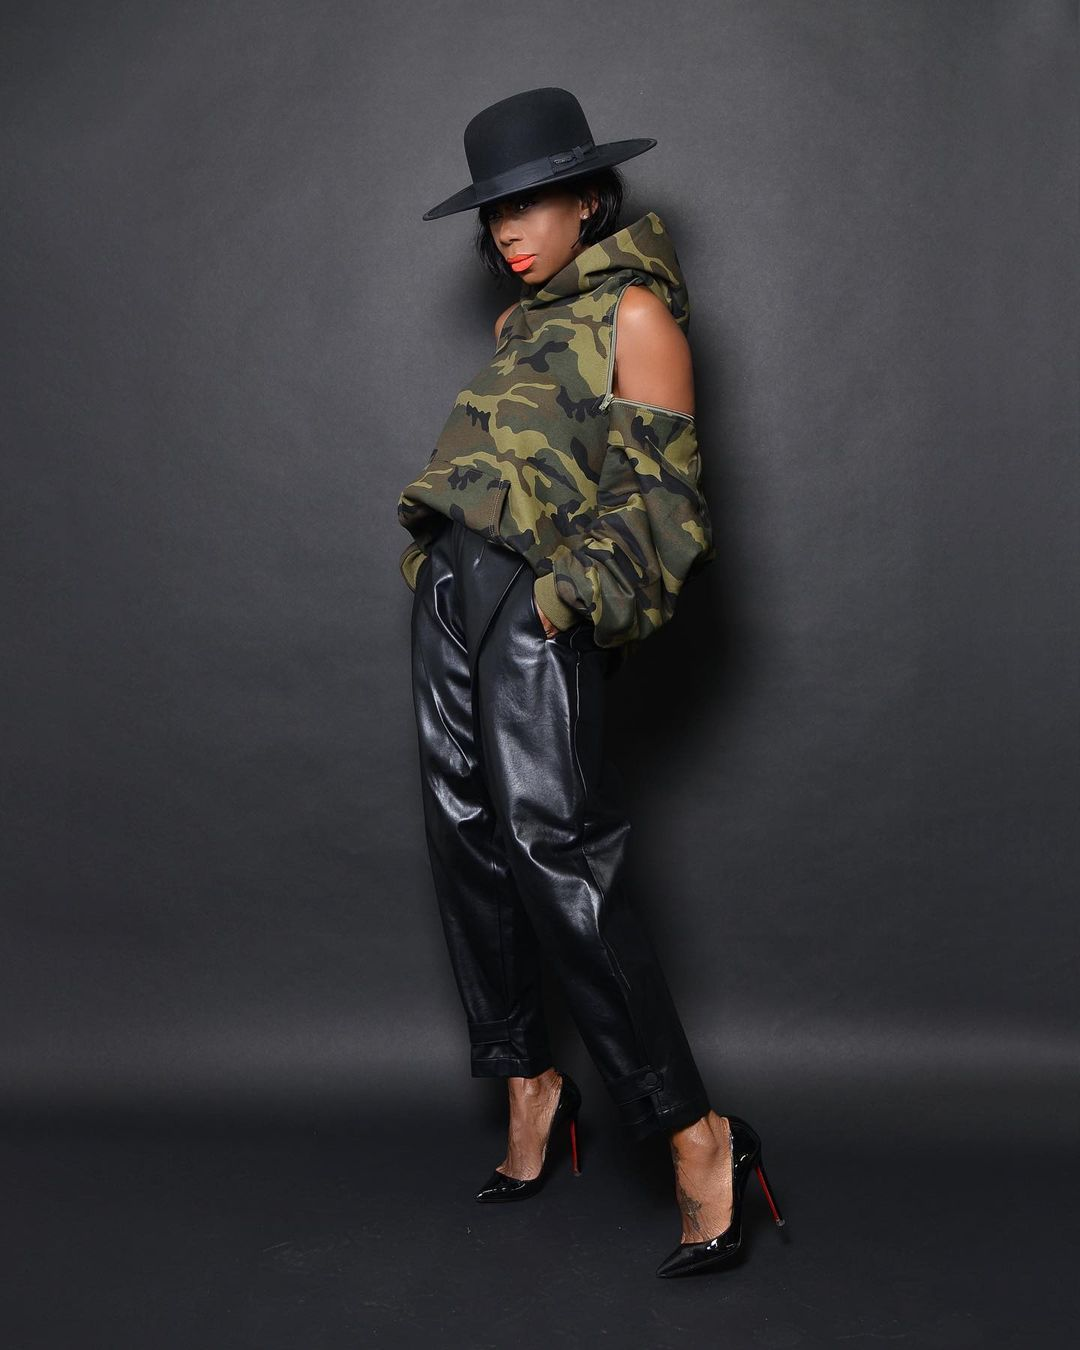 Sade Akinosho Keep It Stunnaing In Leather And Camo